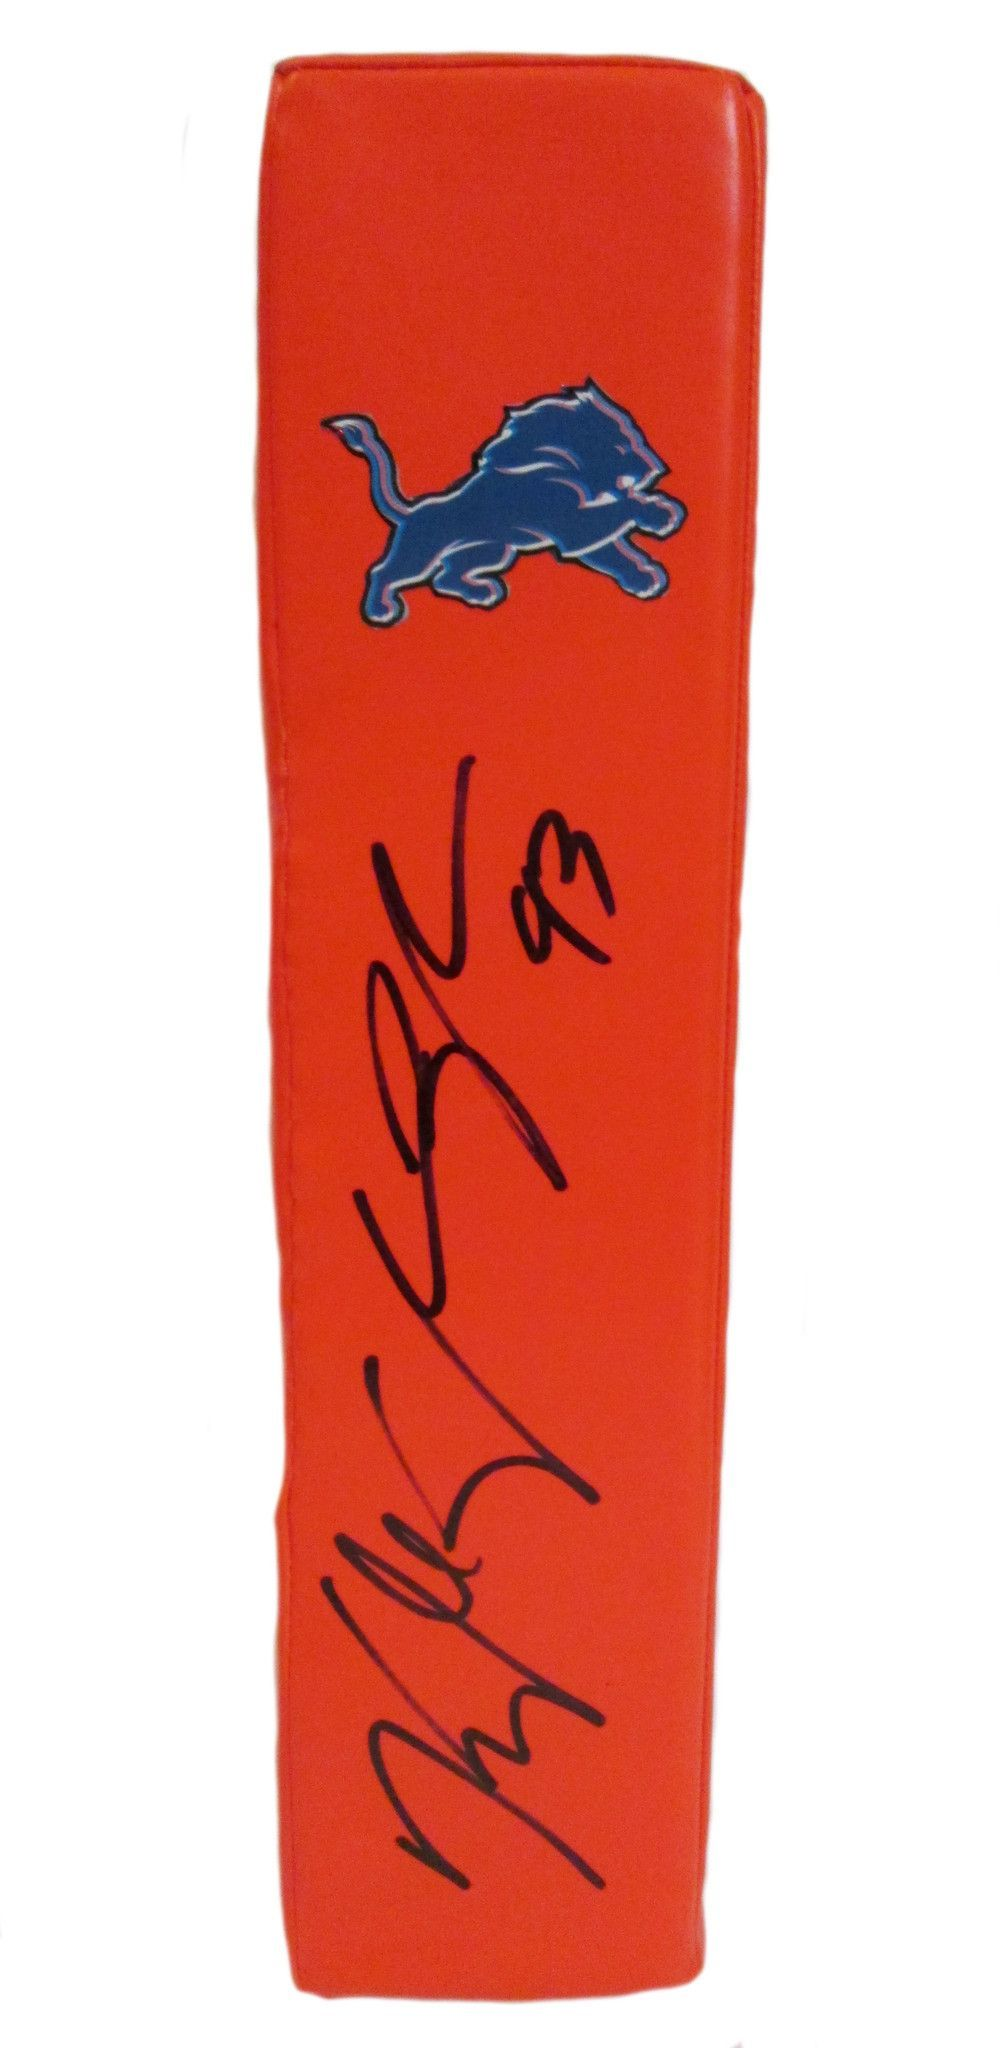 Kyle Vanden Bosch signed Detroit Lions Rawlings football touchdown end zone pylon w/ proof photo.  Proof photo of Kyle signing will be included with your purchase along with a COA issued from Southwestconnection-Memorabilia, guaranteeing the item to pass authentication services from PSA/DNA or JSA. Free USPS shipping. www.AutographedwithProof.com is your one stop for autographed collectibles from Detroit sports teams. Check back with us often, as we are always obtaining new items.